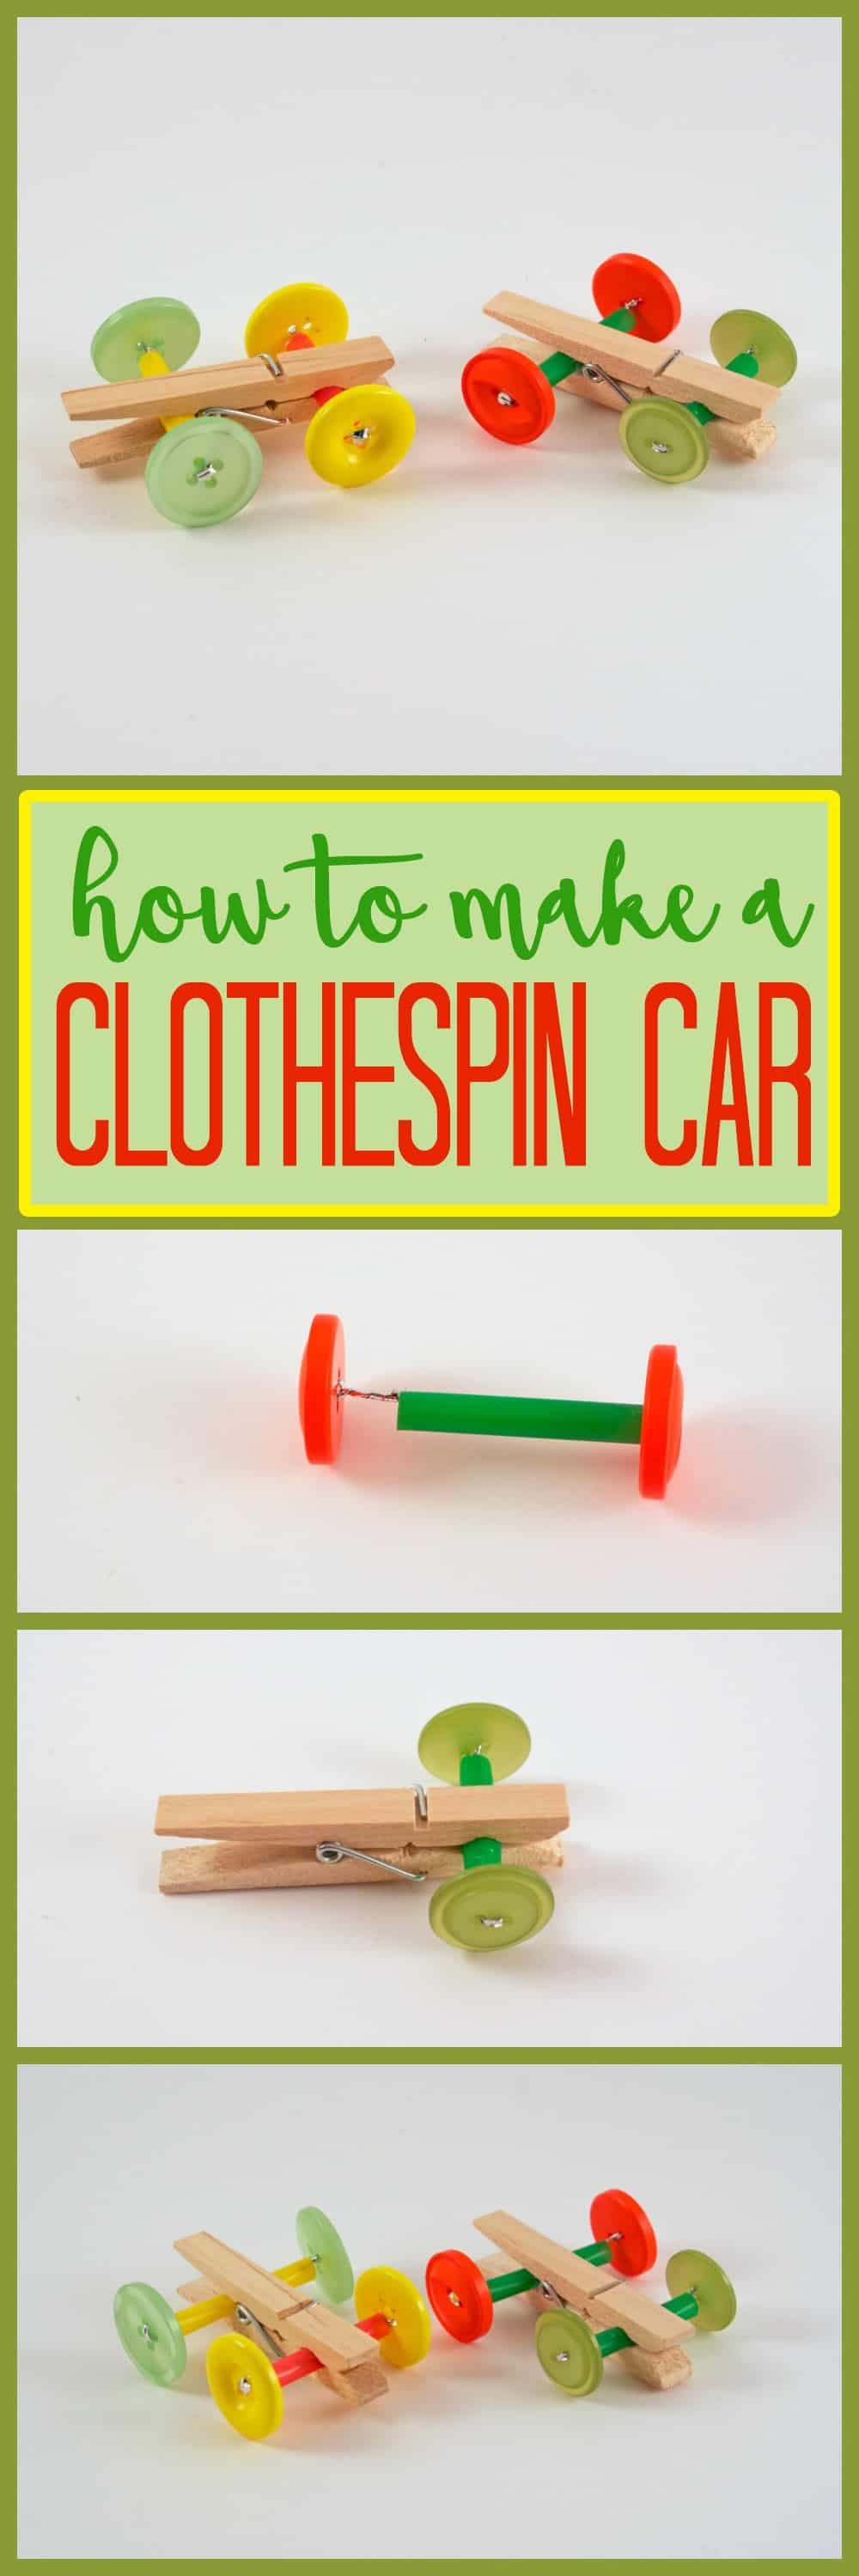 Clothespin car: made with clothespins, buttons, and some imagination. In no time you'll have your very own easy to make DIY toy!